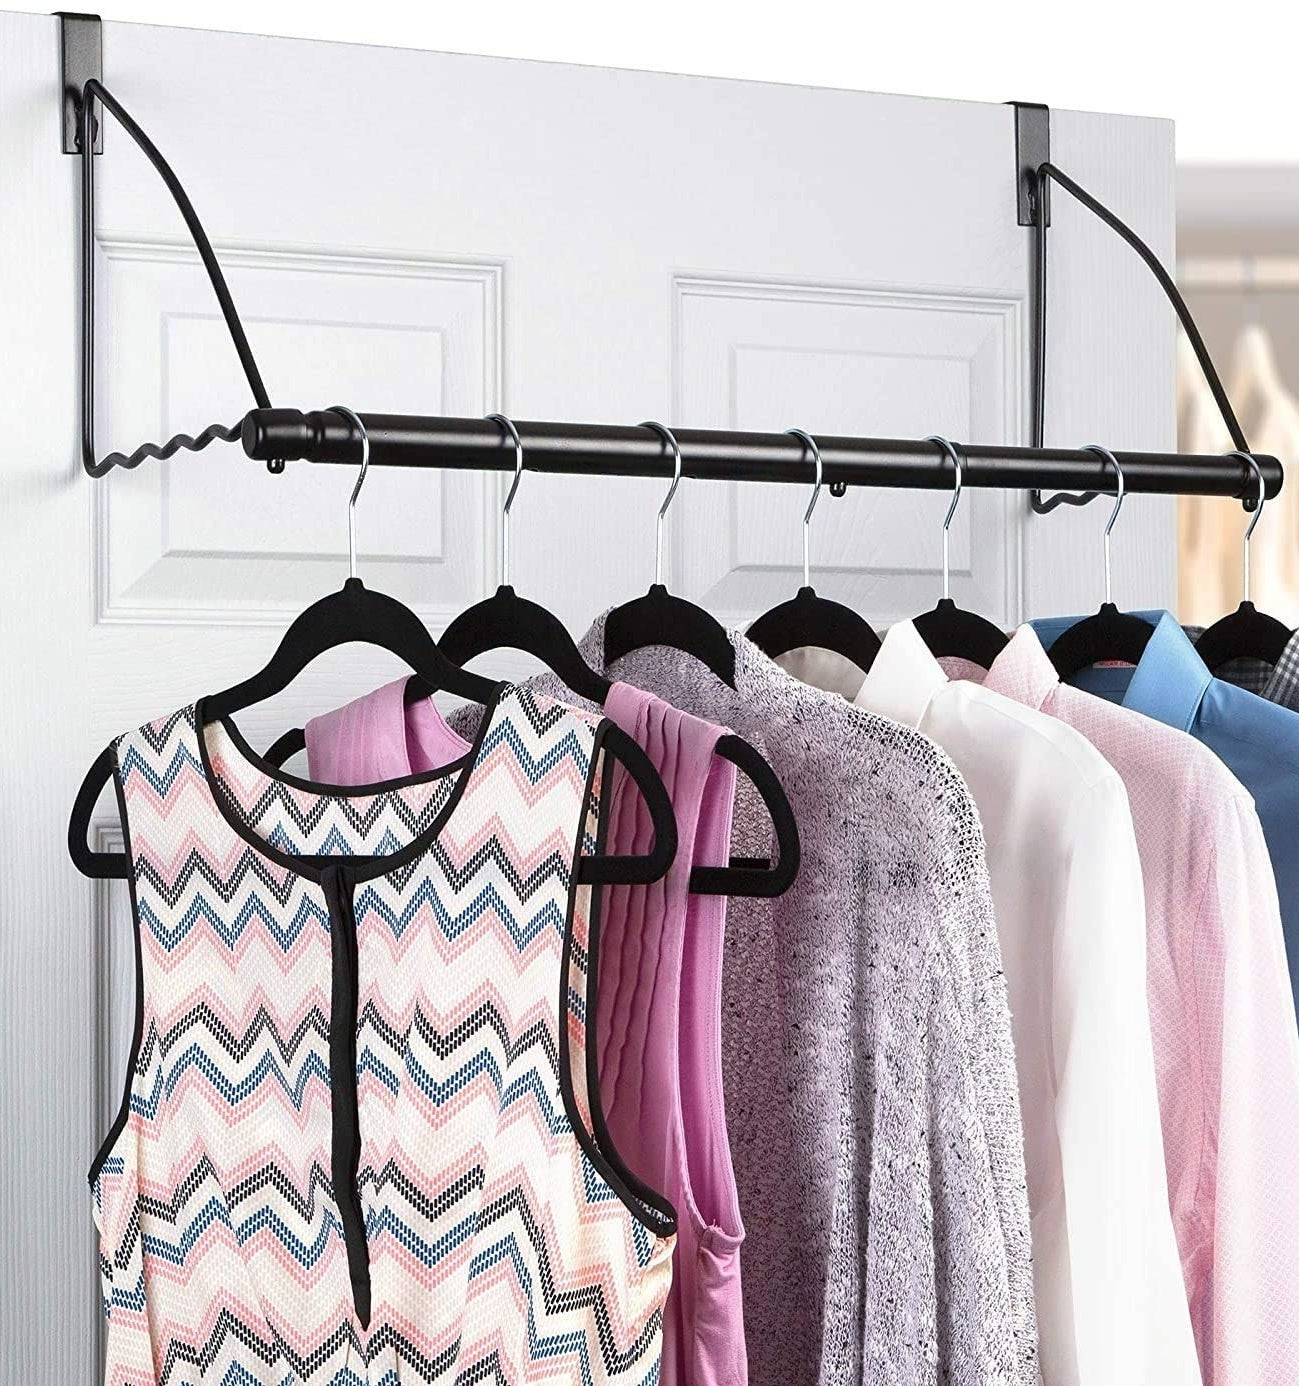 Several shirts hanging from the rod